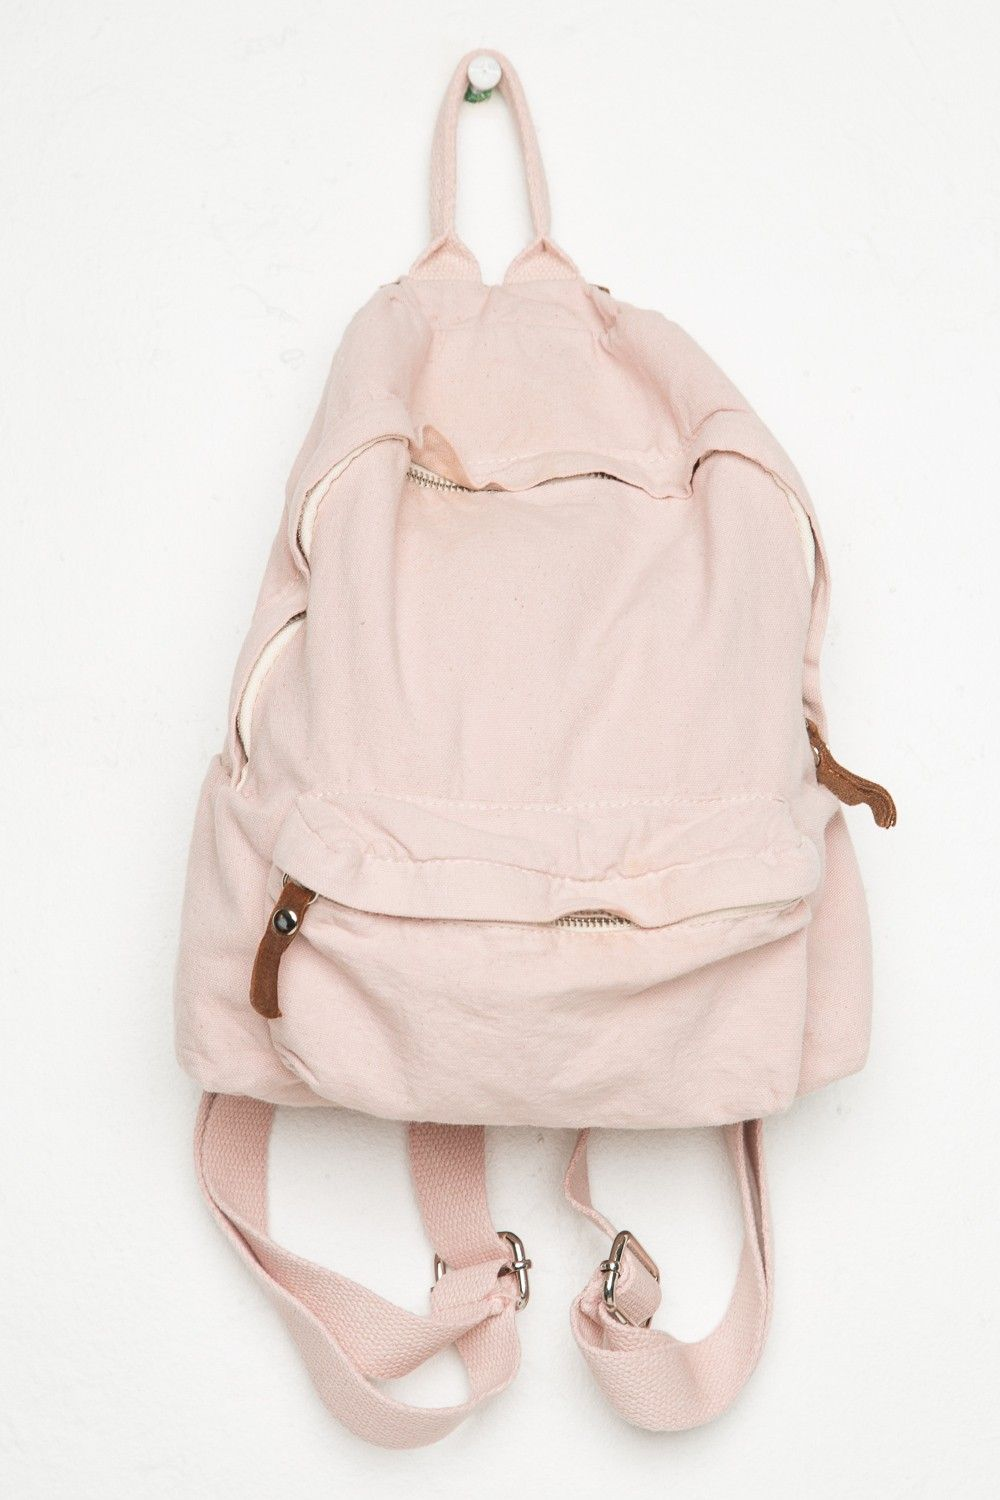 6f839b892f Brandy Melville Pink Mini Backpack